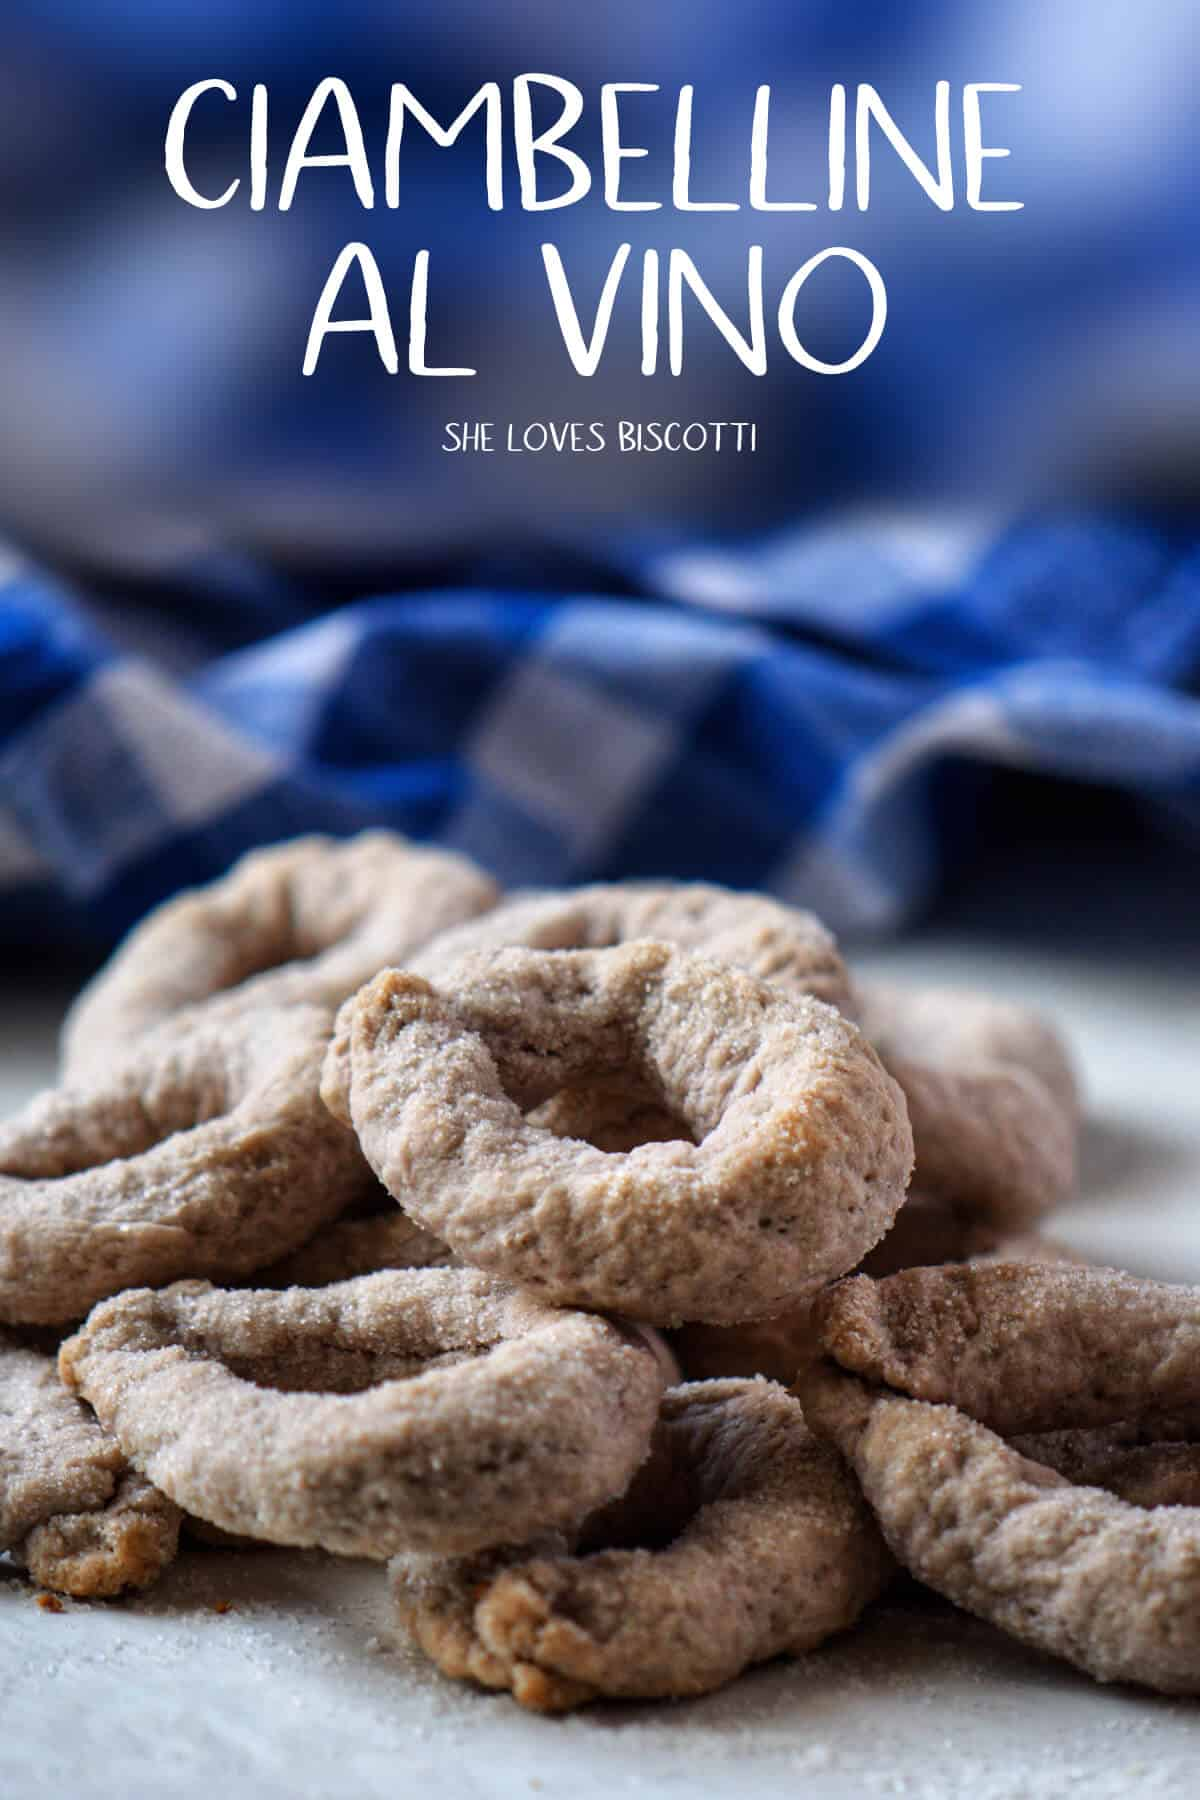 Ciambelline al vino - These crunchy Italian wine cookies are perfectly sweetened and thoroughly enjoyed dunked in coffee.  #shelovesbiscotti #Winecookies #ciambellinealvino #Italiancookie #Italianwinecookies